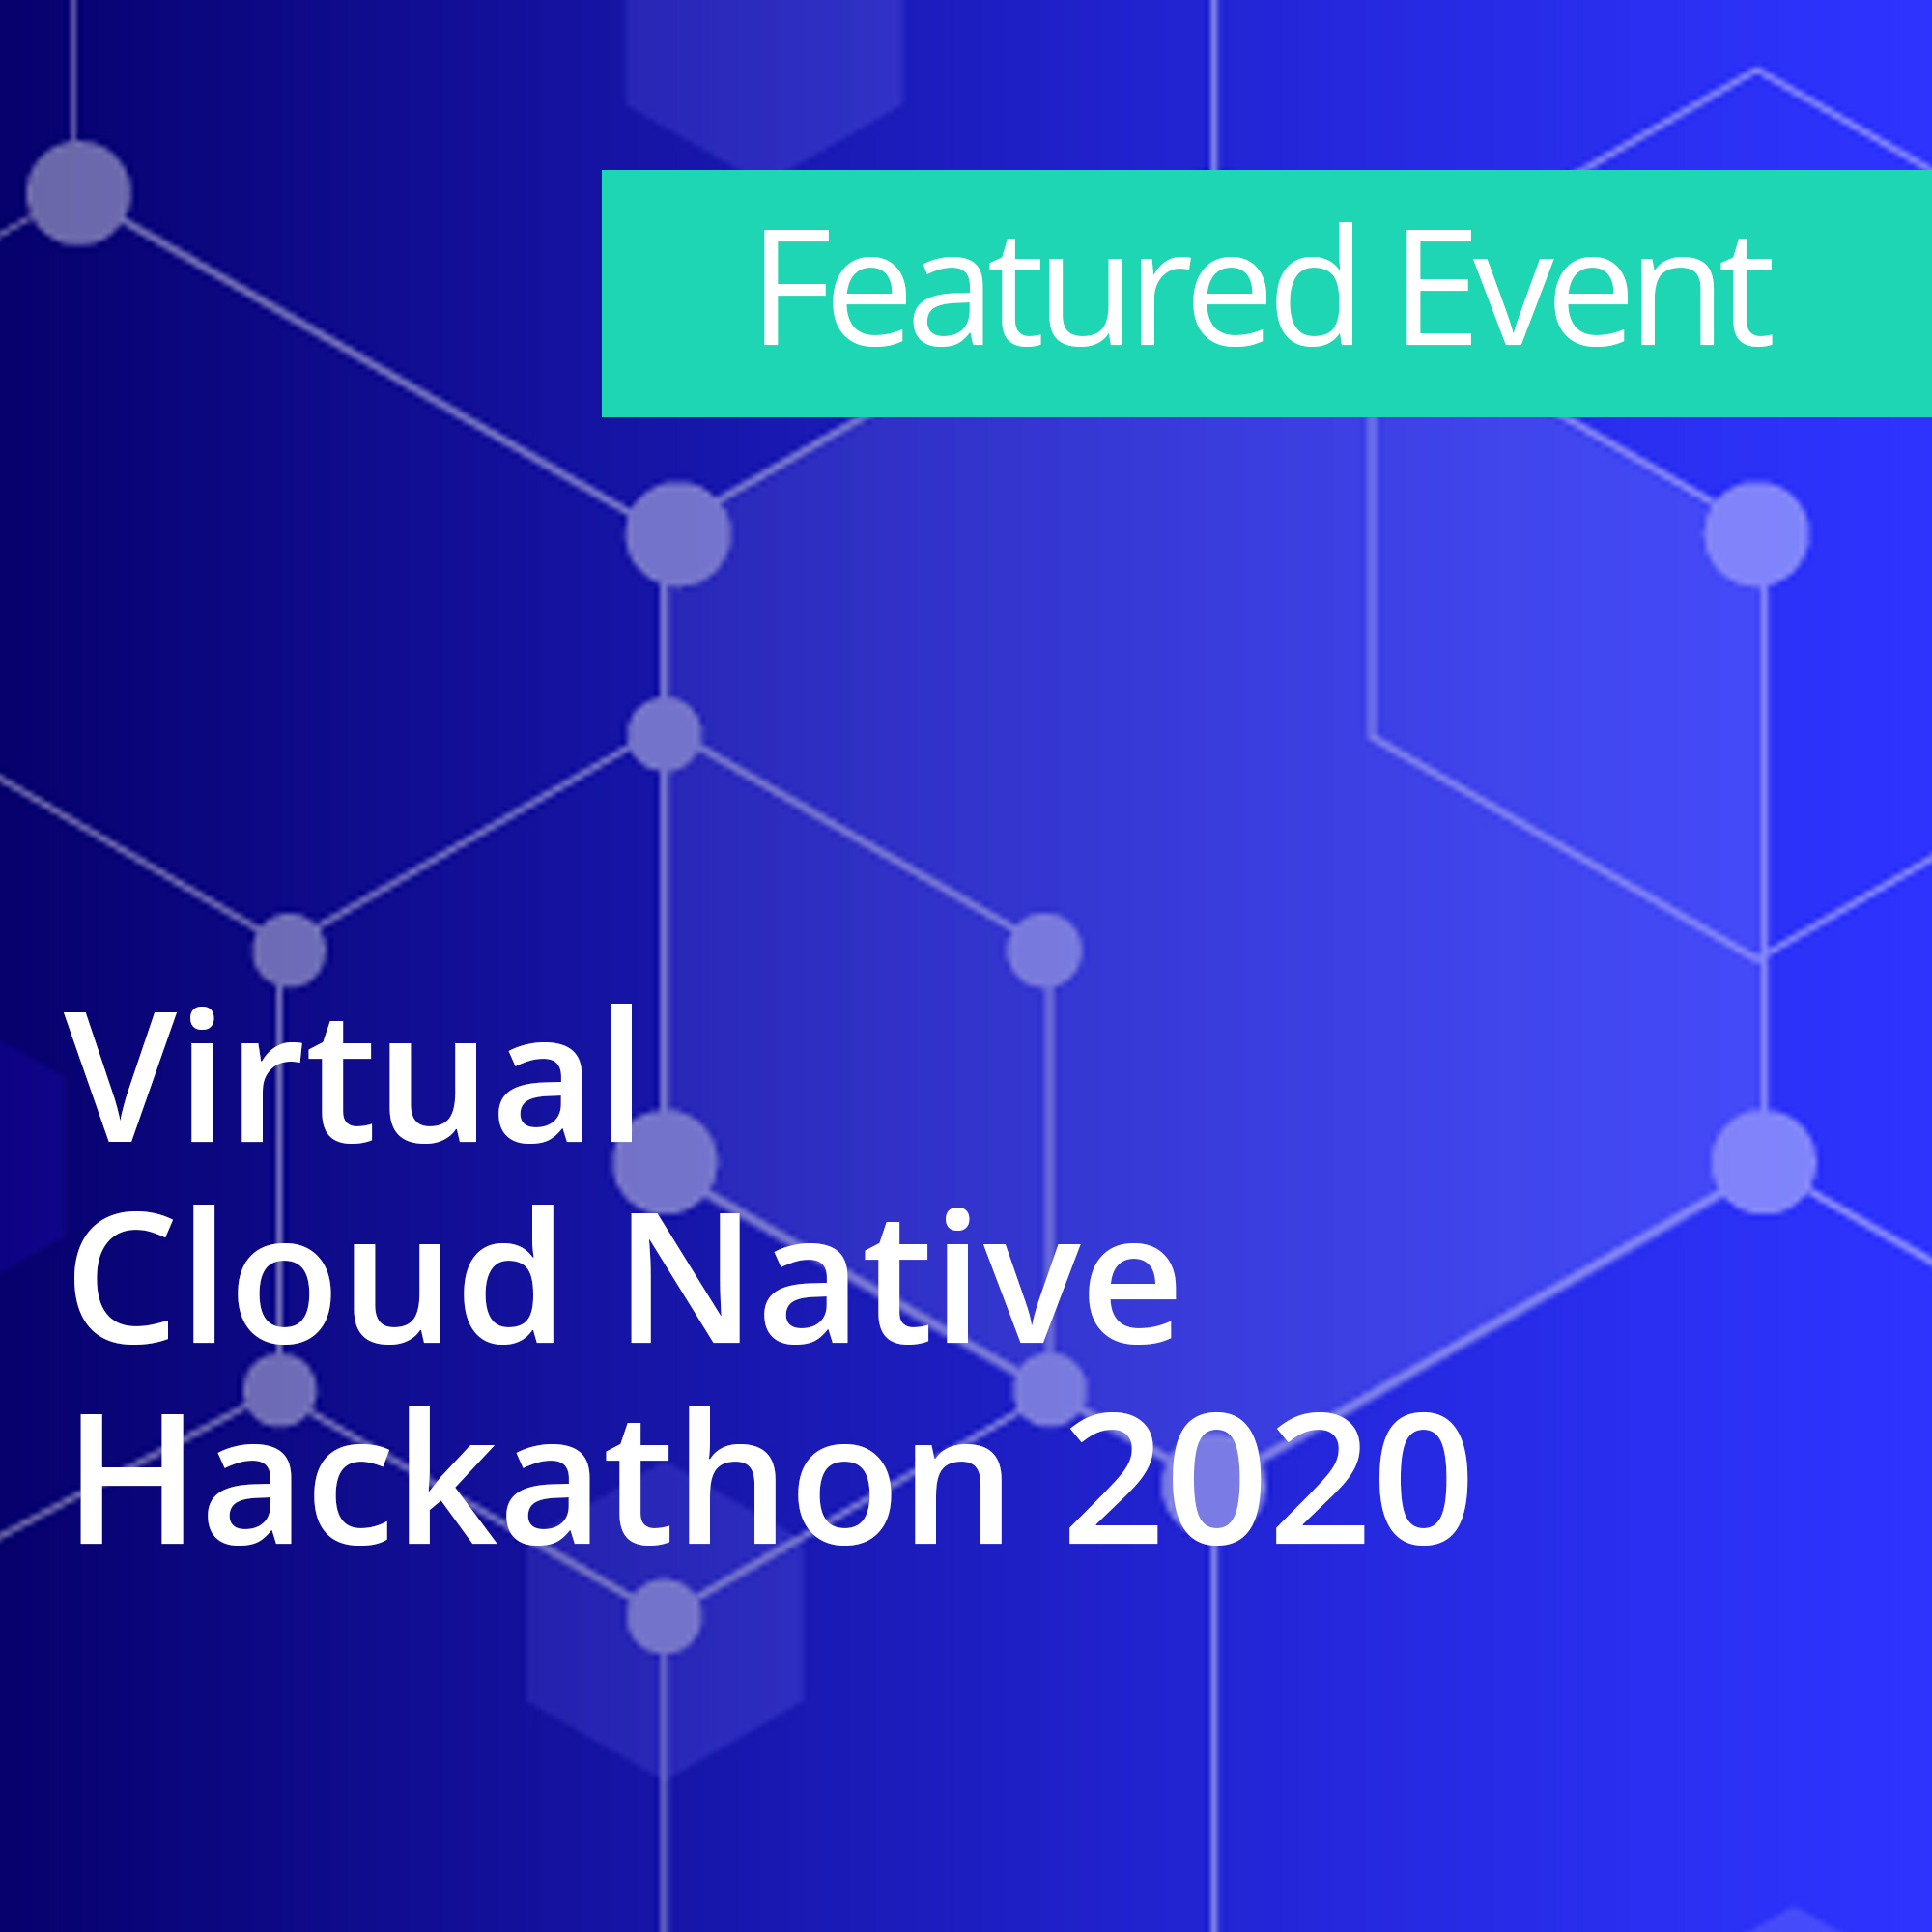 Virtual Cloud Native Hackathon 2020